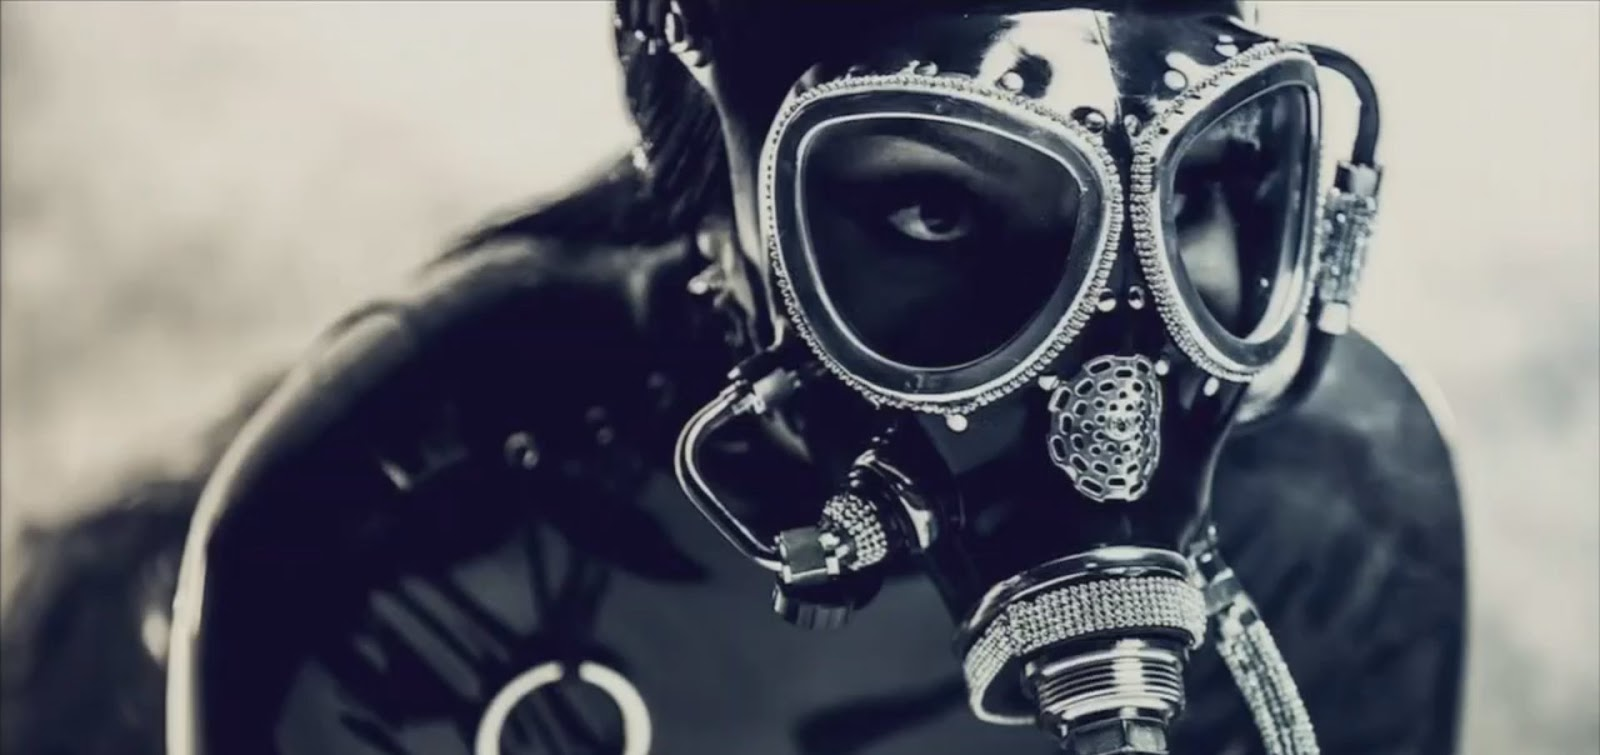 Custom gas mask with Swarovski crystal detailing <br>Billboard Music Awards 2017 <br>Stylist: B Akerlund